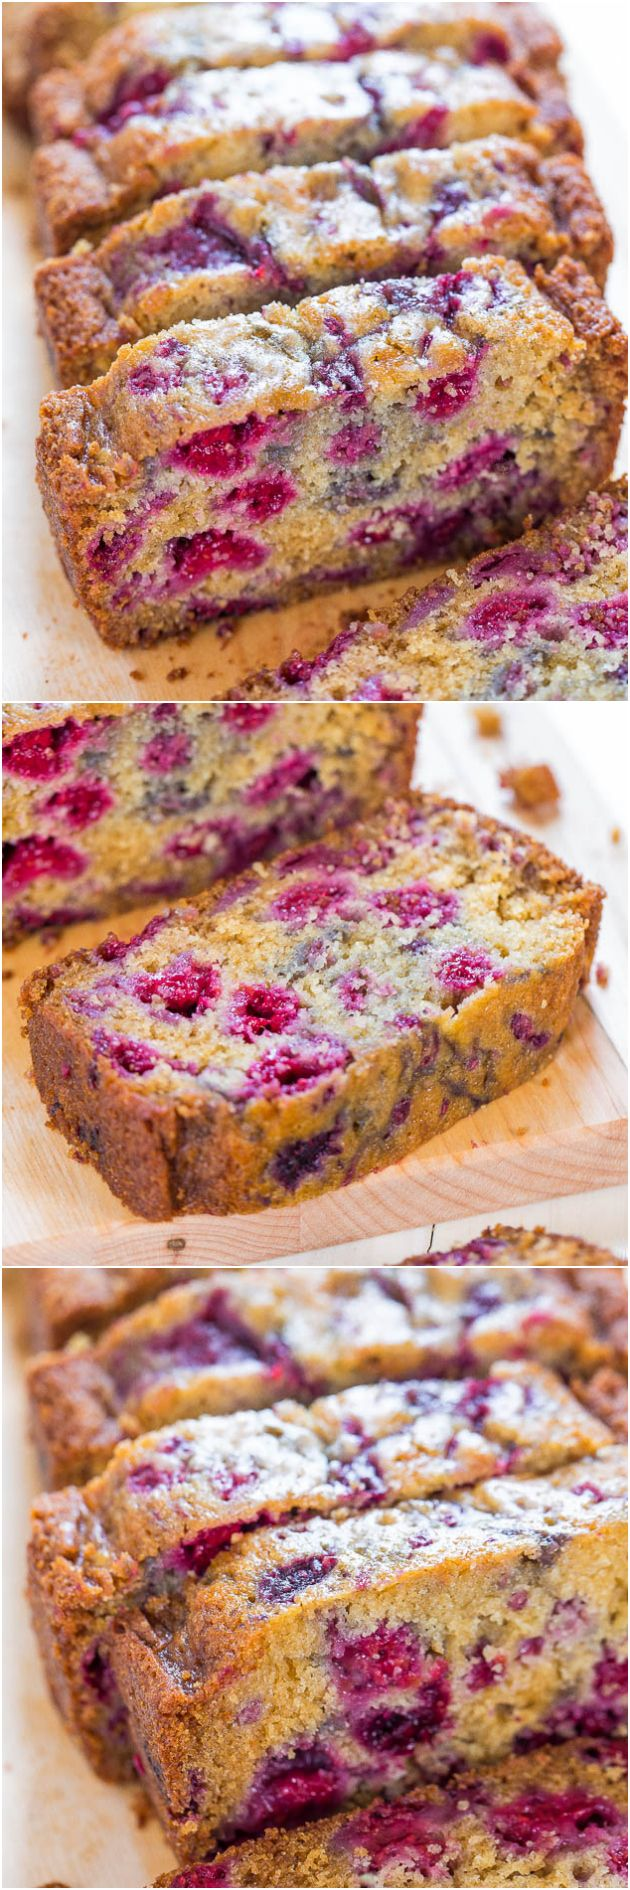 The Best Raspberry Bread - There's almost more raspberries than bread! Super soft and just bursting with juicy berries! So delishhhh! (frozen berries okay!)